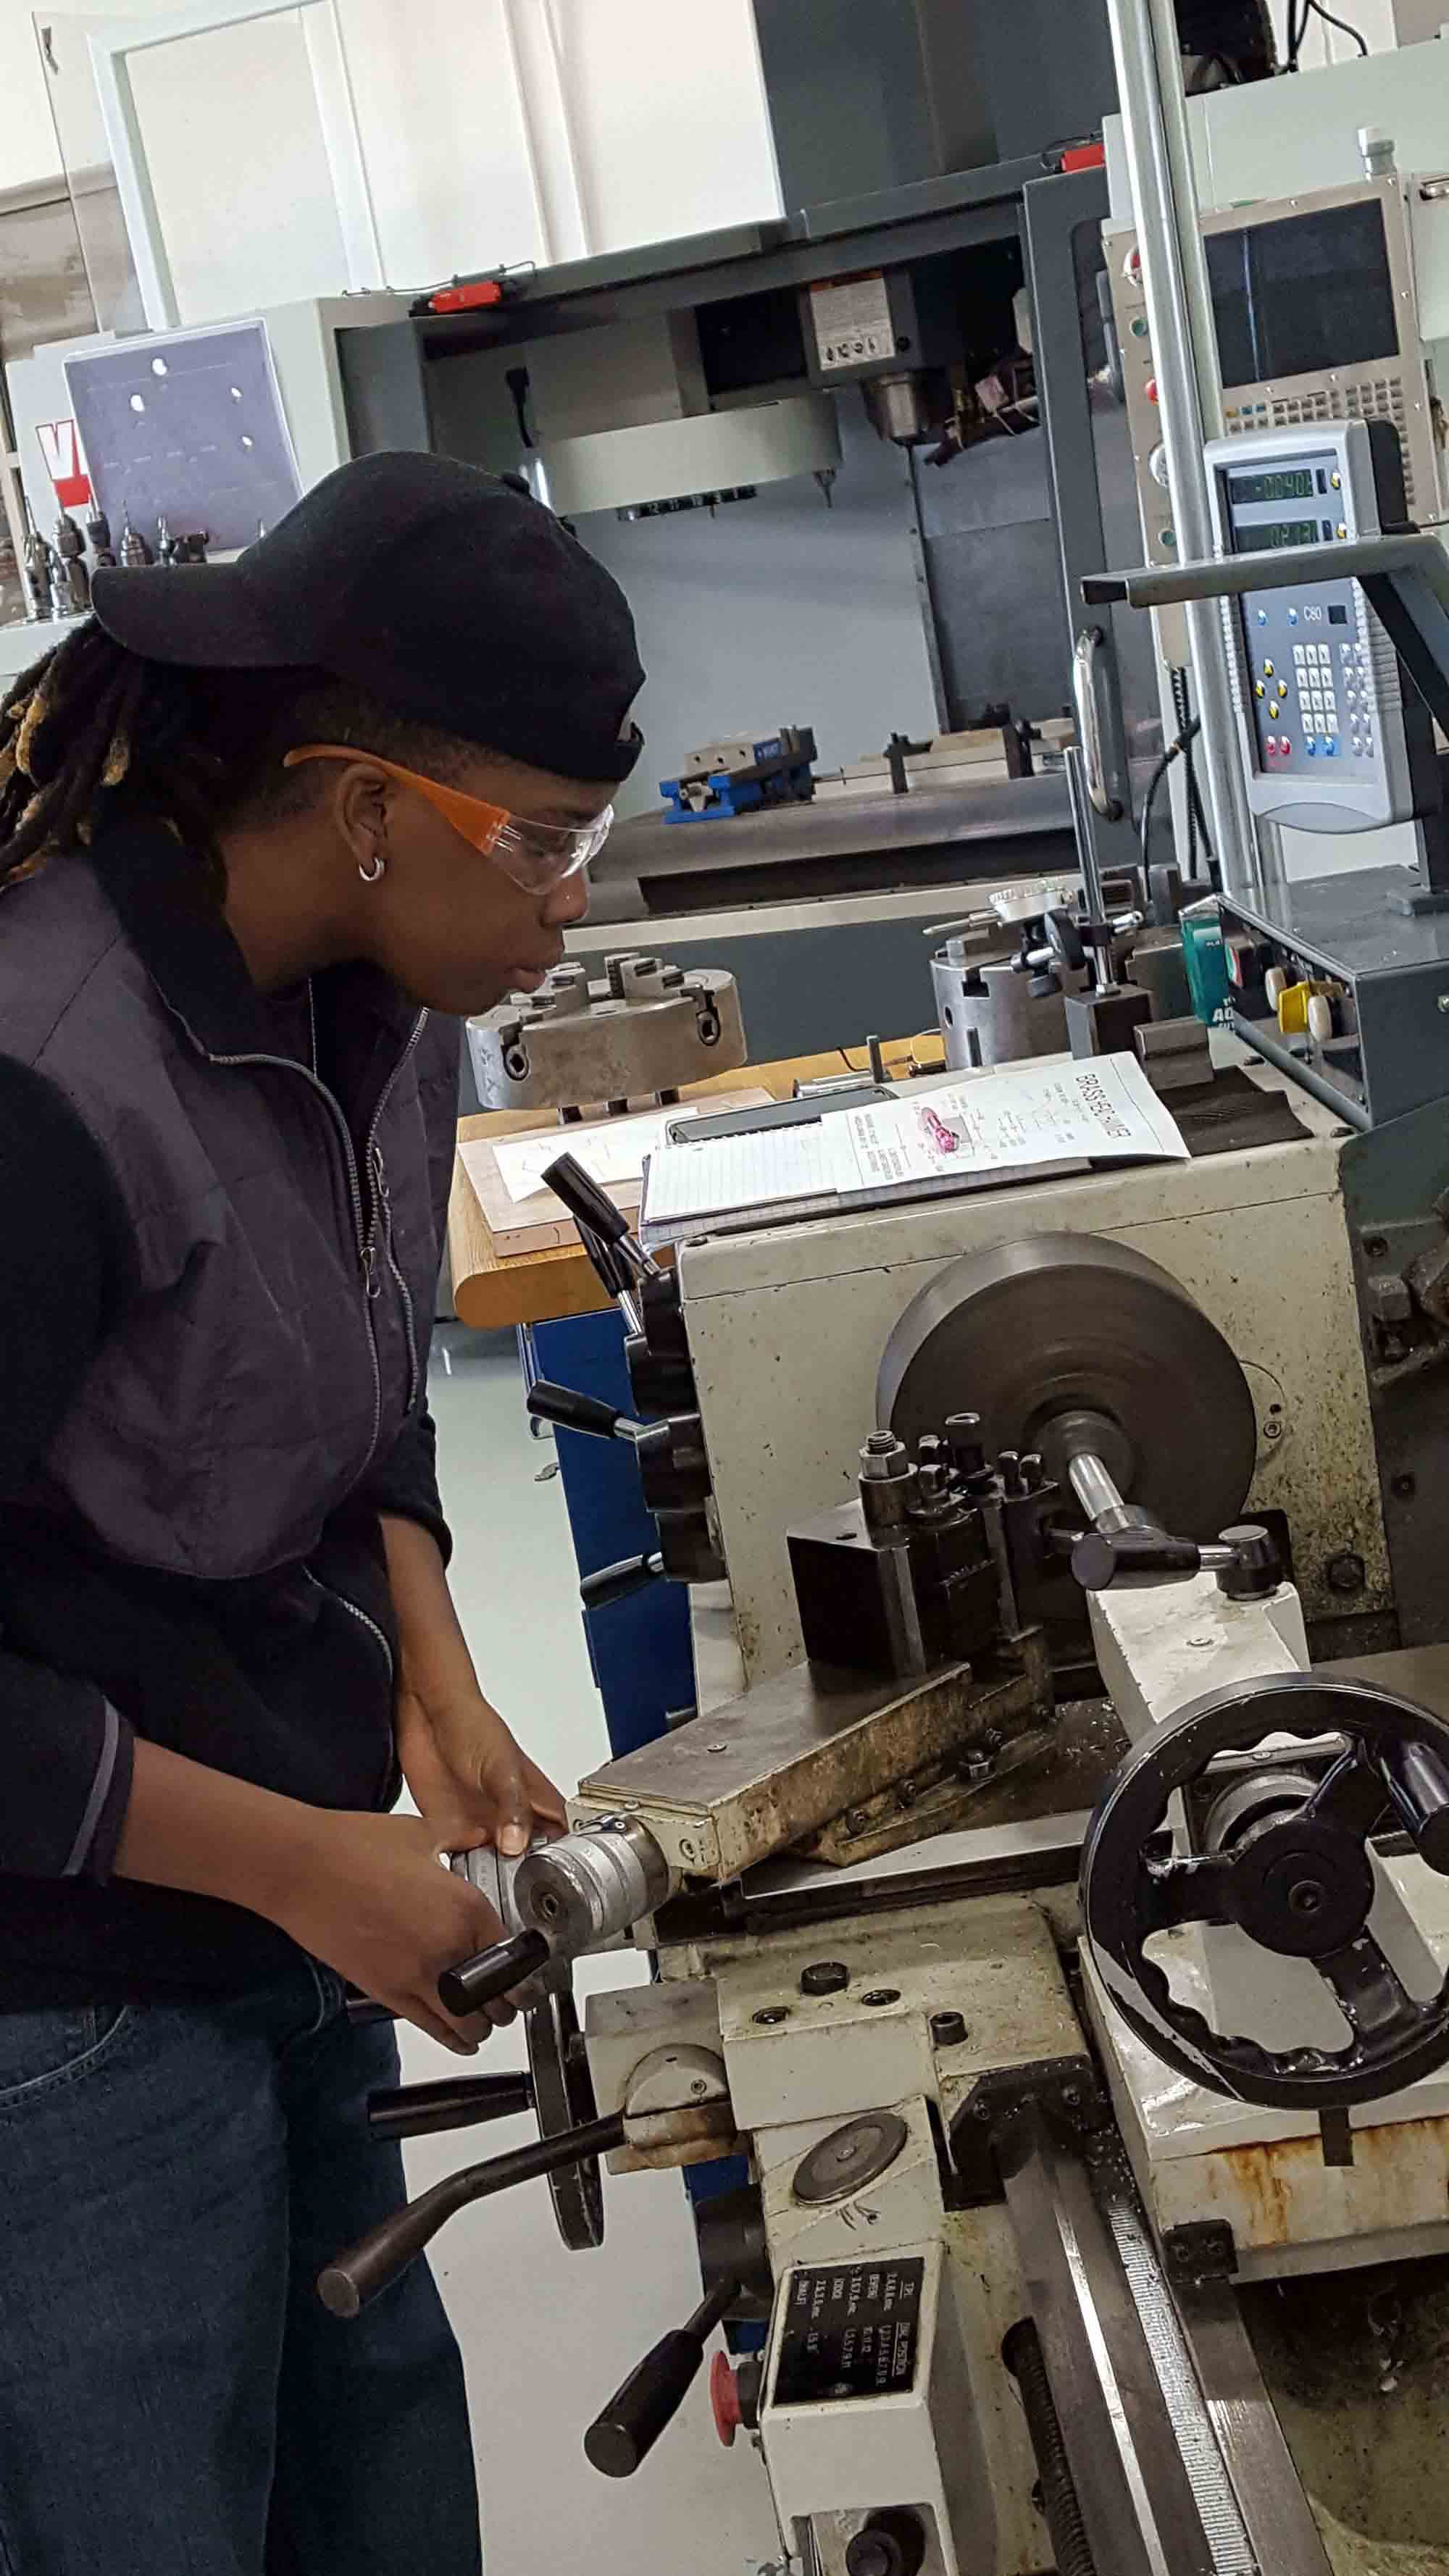 Woman Using Manufacturing Equipment